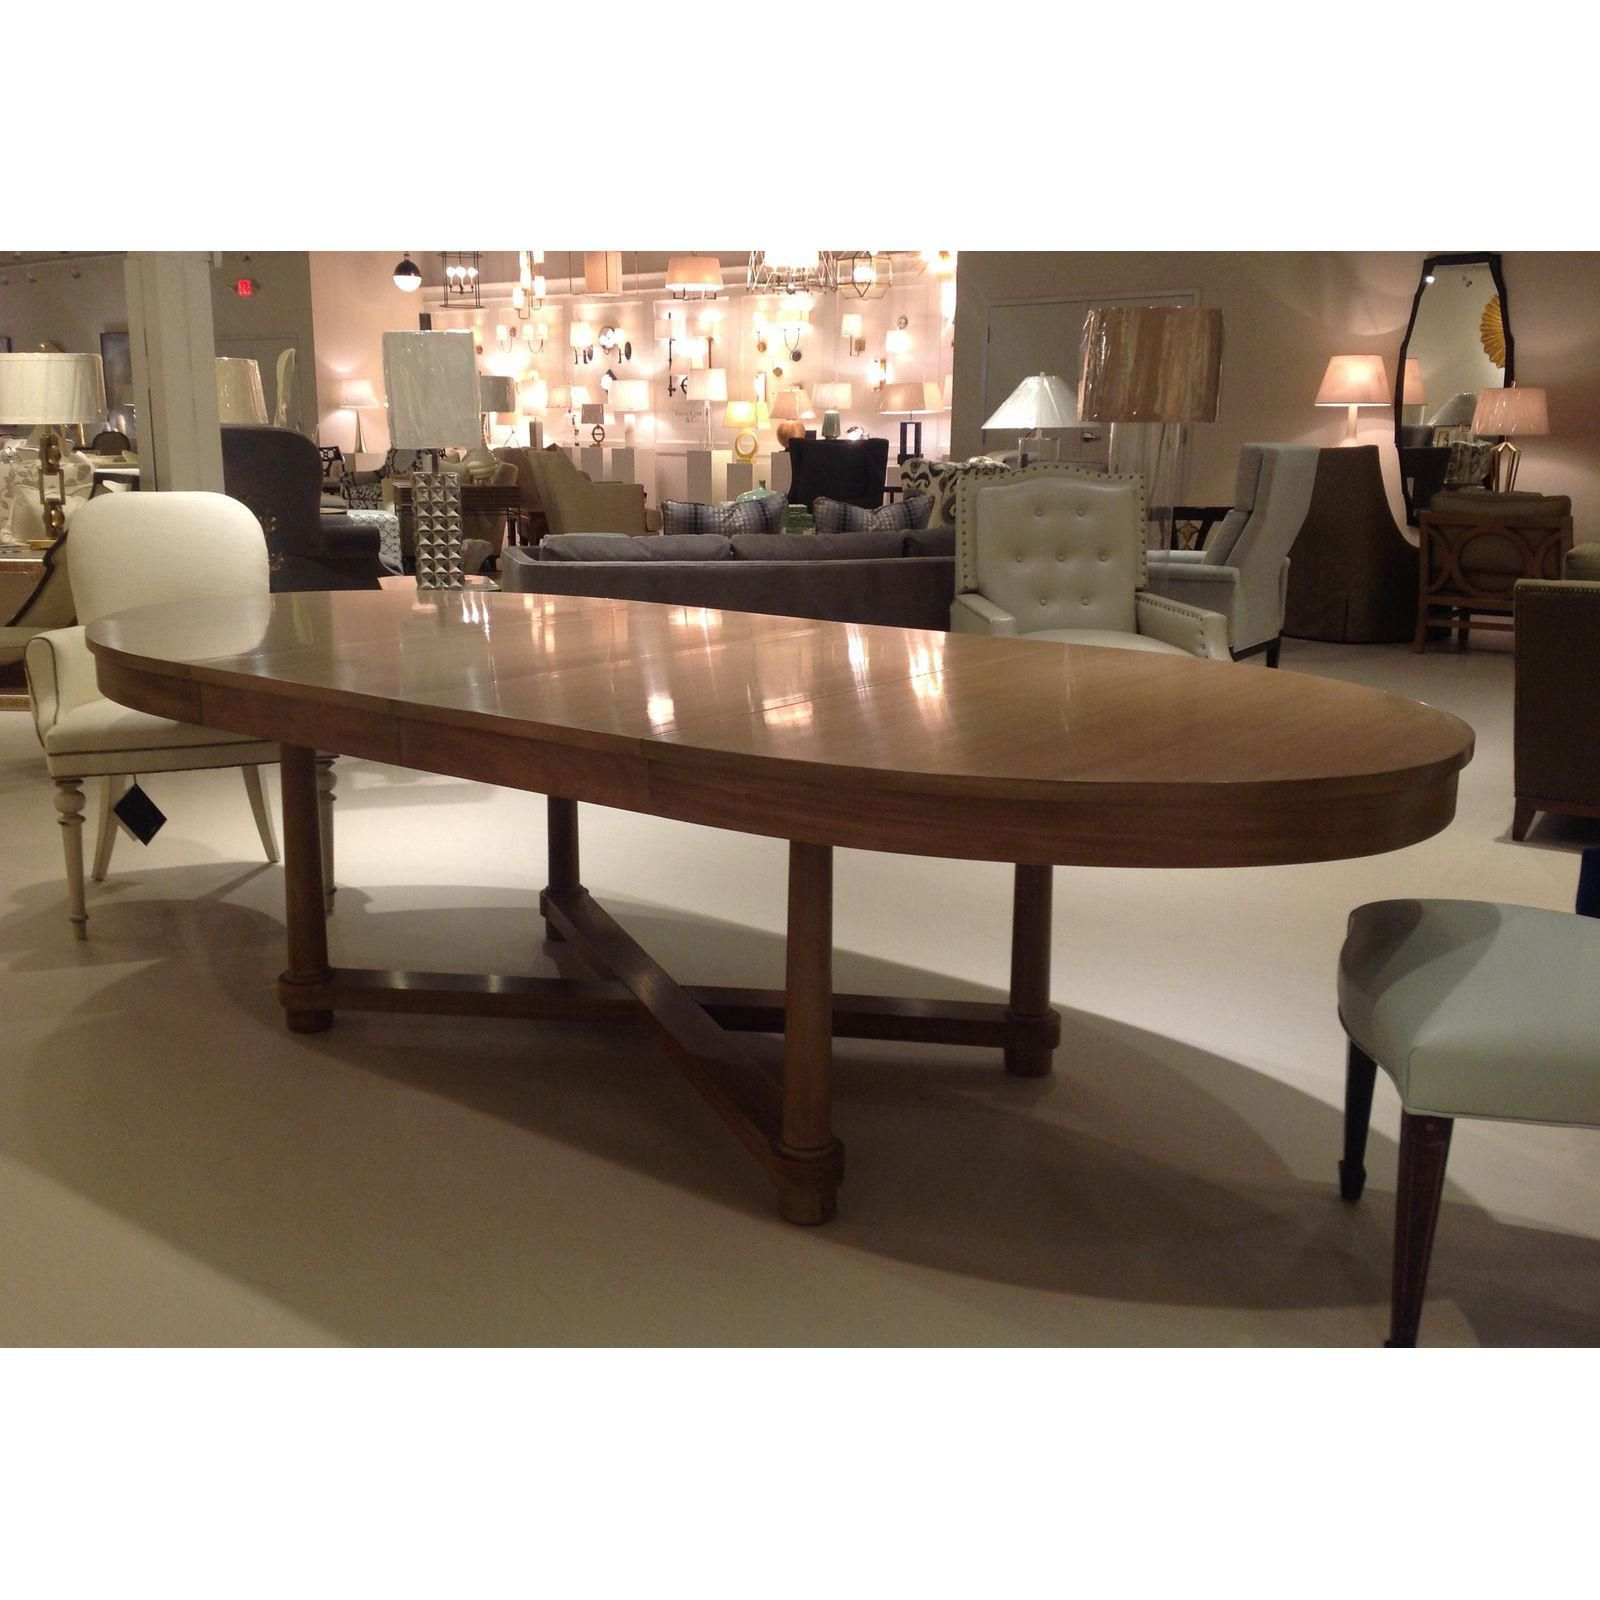 Barbara Barry For Baker Oval Dining Table Image 5 Of 5 Dining Table Dining Room Table Dining